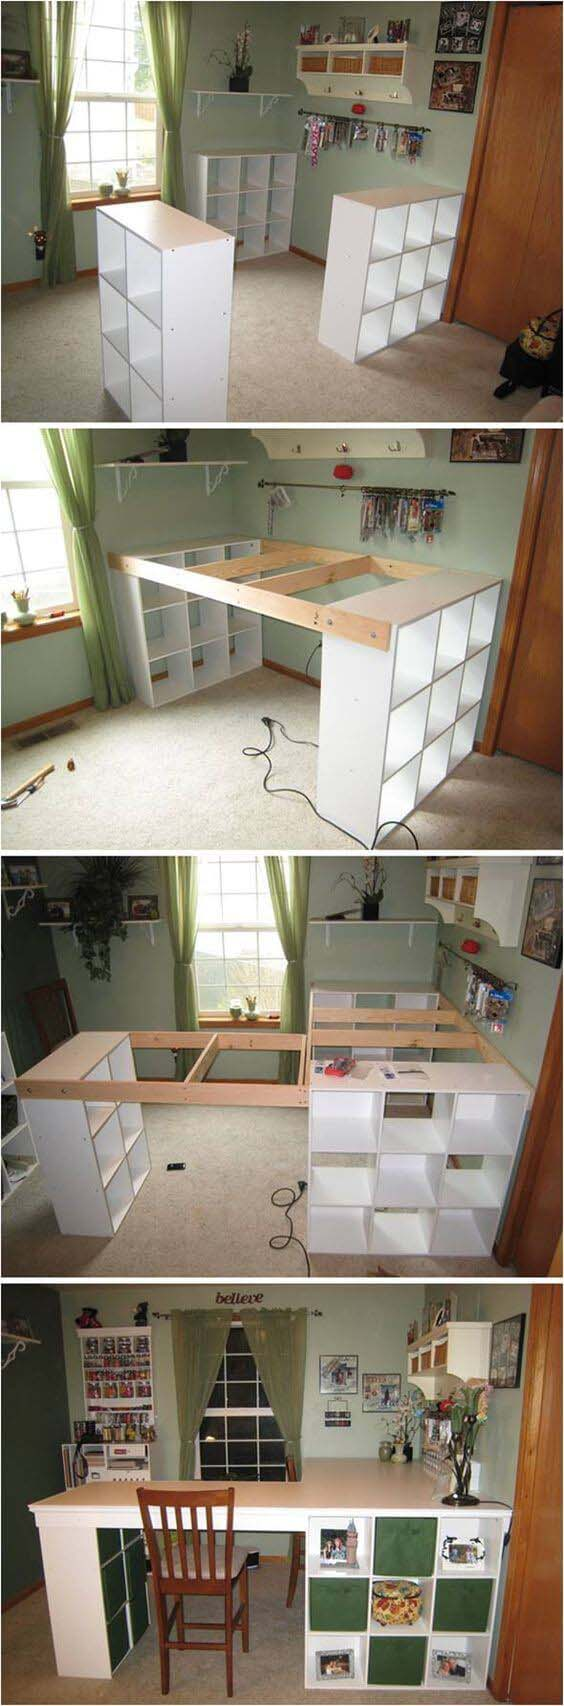 L-Shaped Work Space with Built-in Storage #diy #weekendproject #decorhomeideas